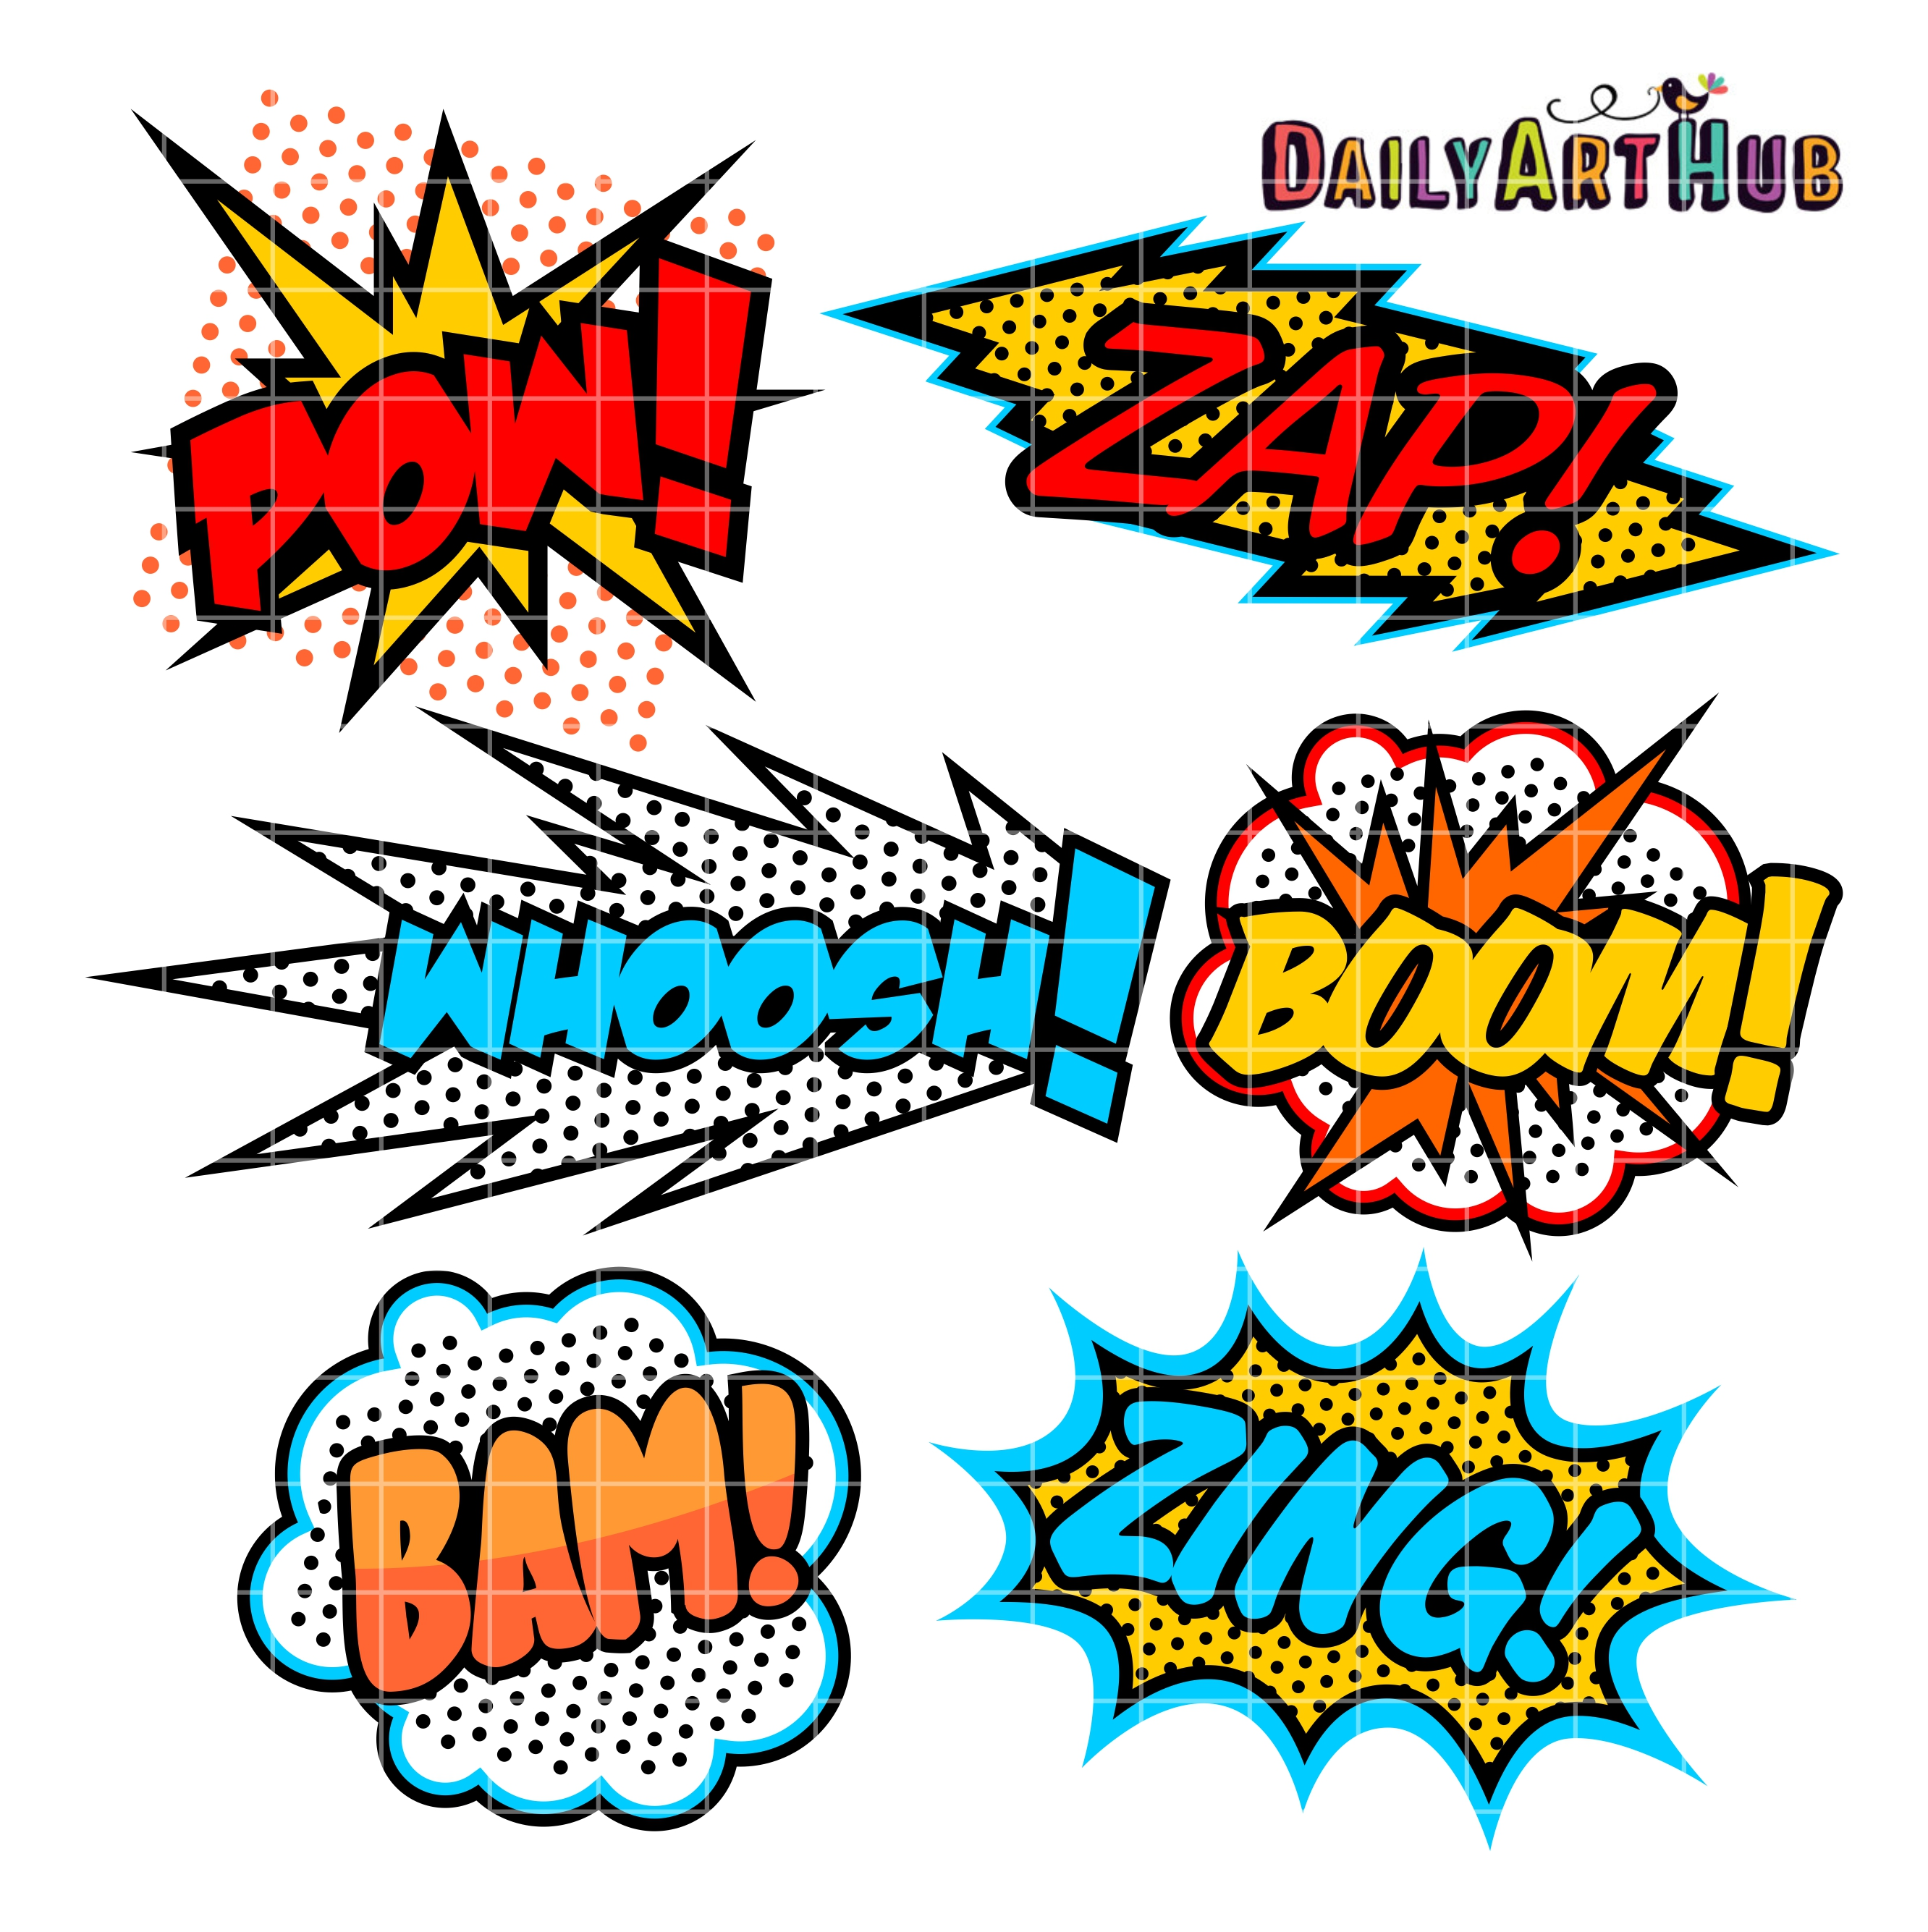 superhero callout clip art set daily art hub free clip art everyday rh dailyarthub com superhero clipart free download superhero clip art free download